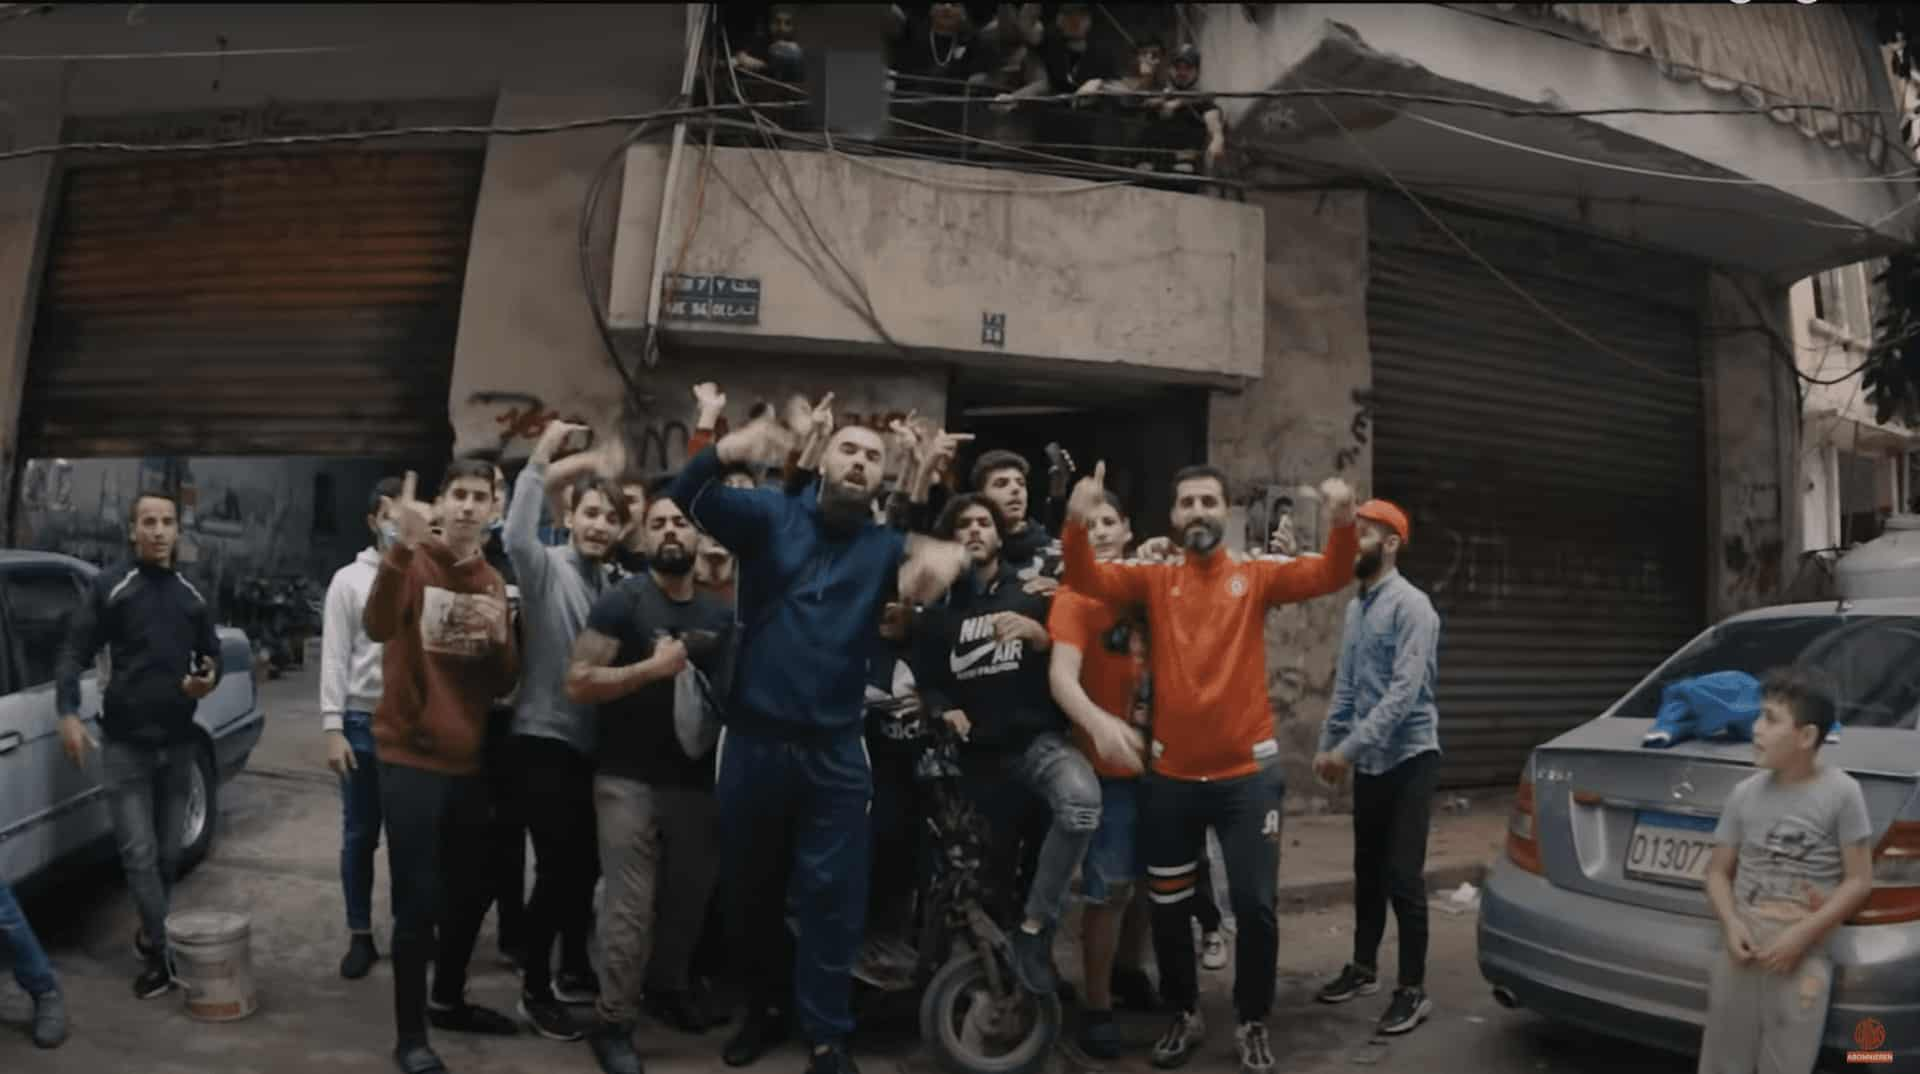 187 STRASSENBANDE OUTFIT – PARADIES